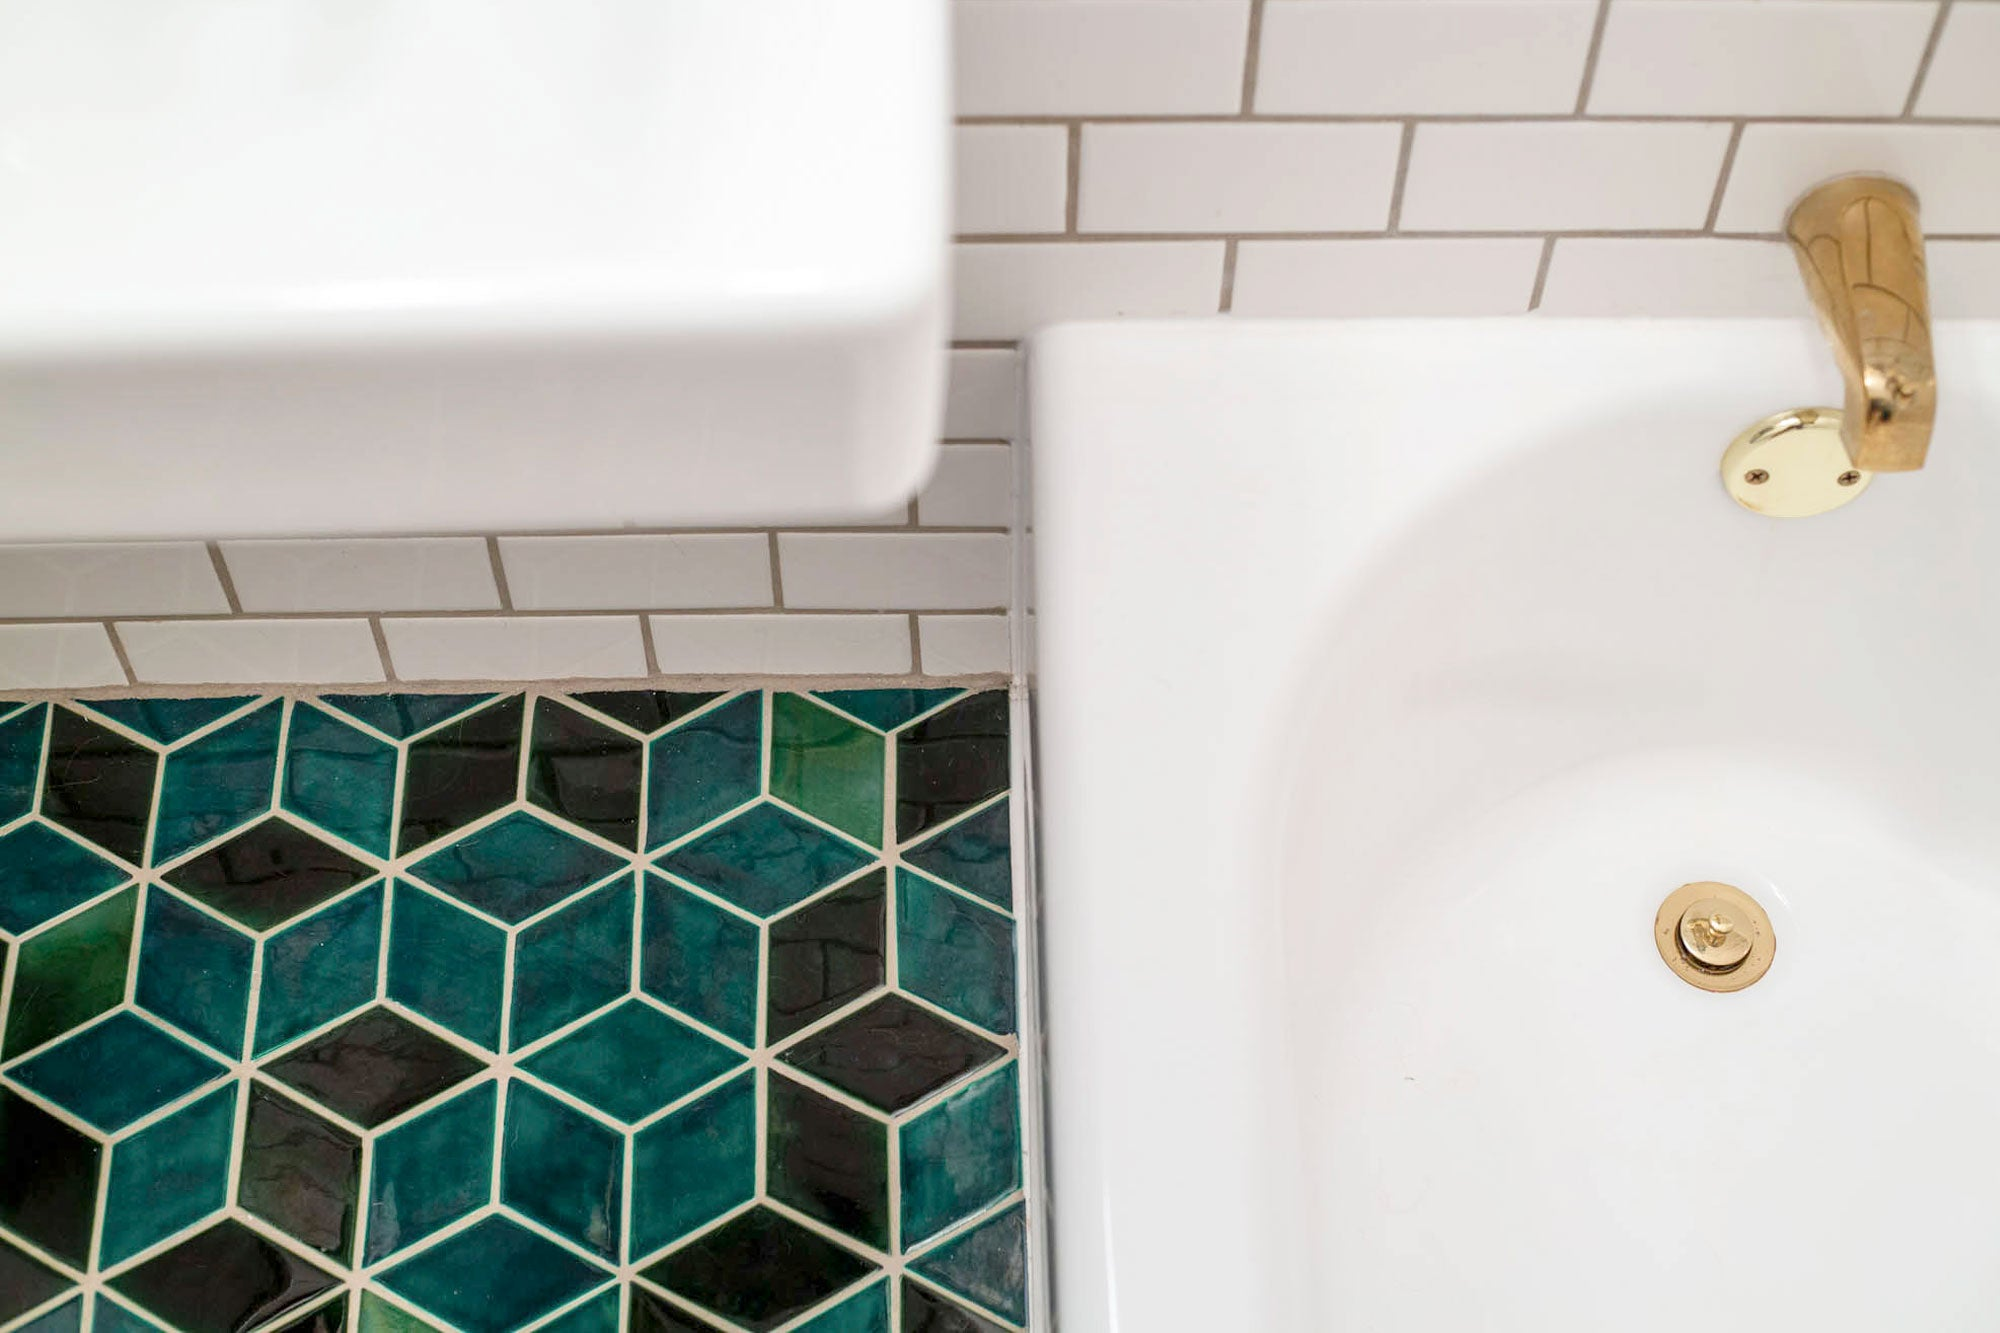 Green Tile Bathroom with Gold Accents